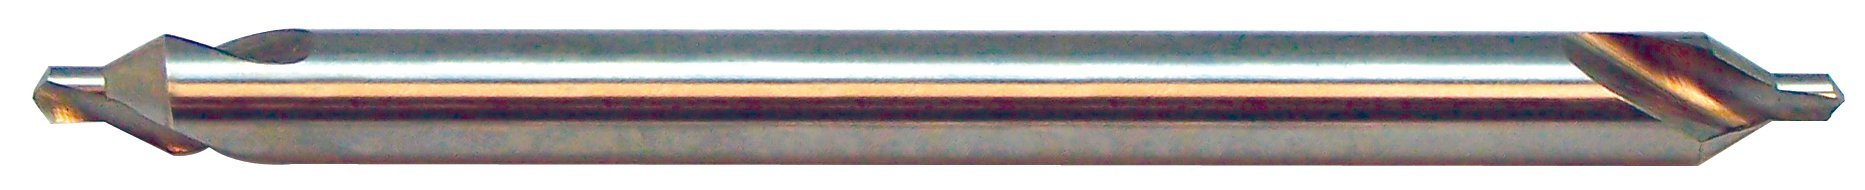 KEO 29706 Long Series Solid Carbide Combined Drill and Countersink, Uncoated (Bright) Finish, 60 Degree Point Angle, Round Shank, 5/8'' Body Diameter, 1/4'' Point Diameter, 6'' Overall Length